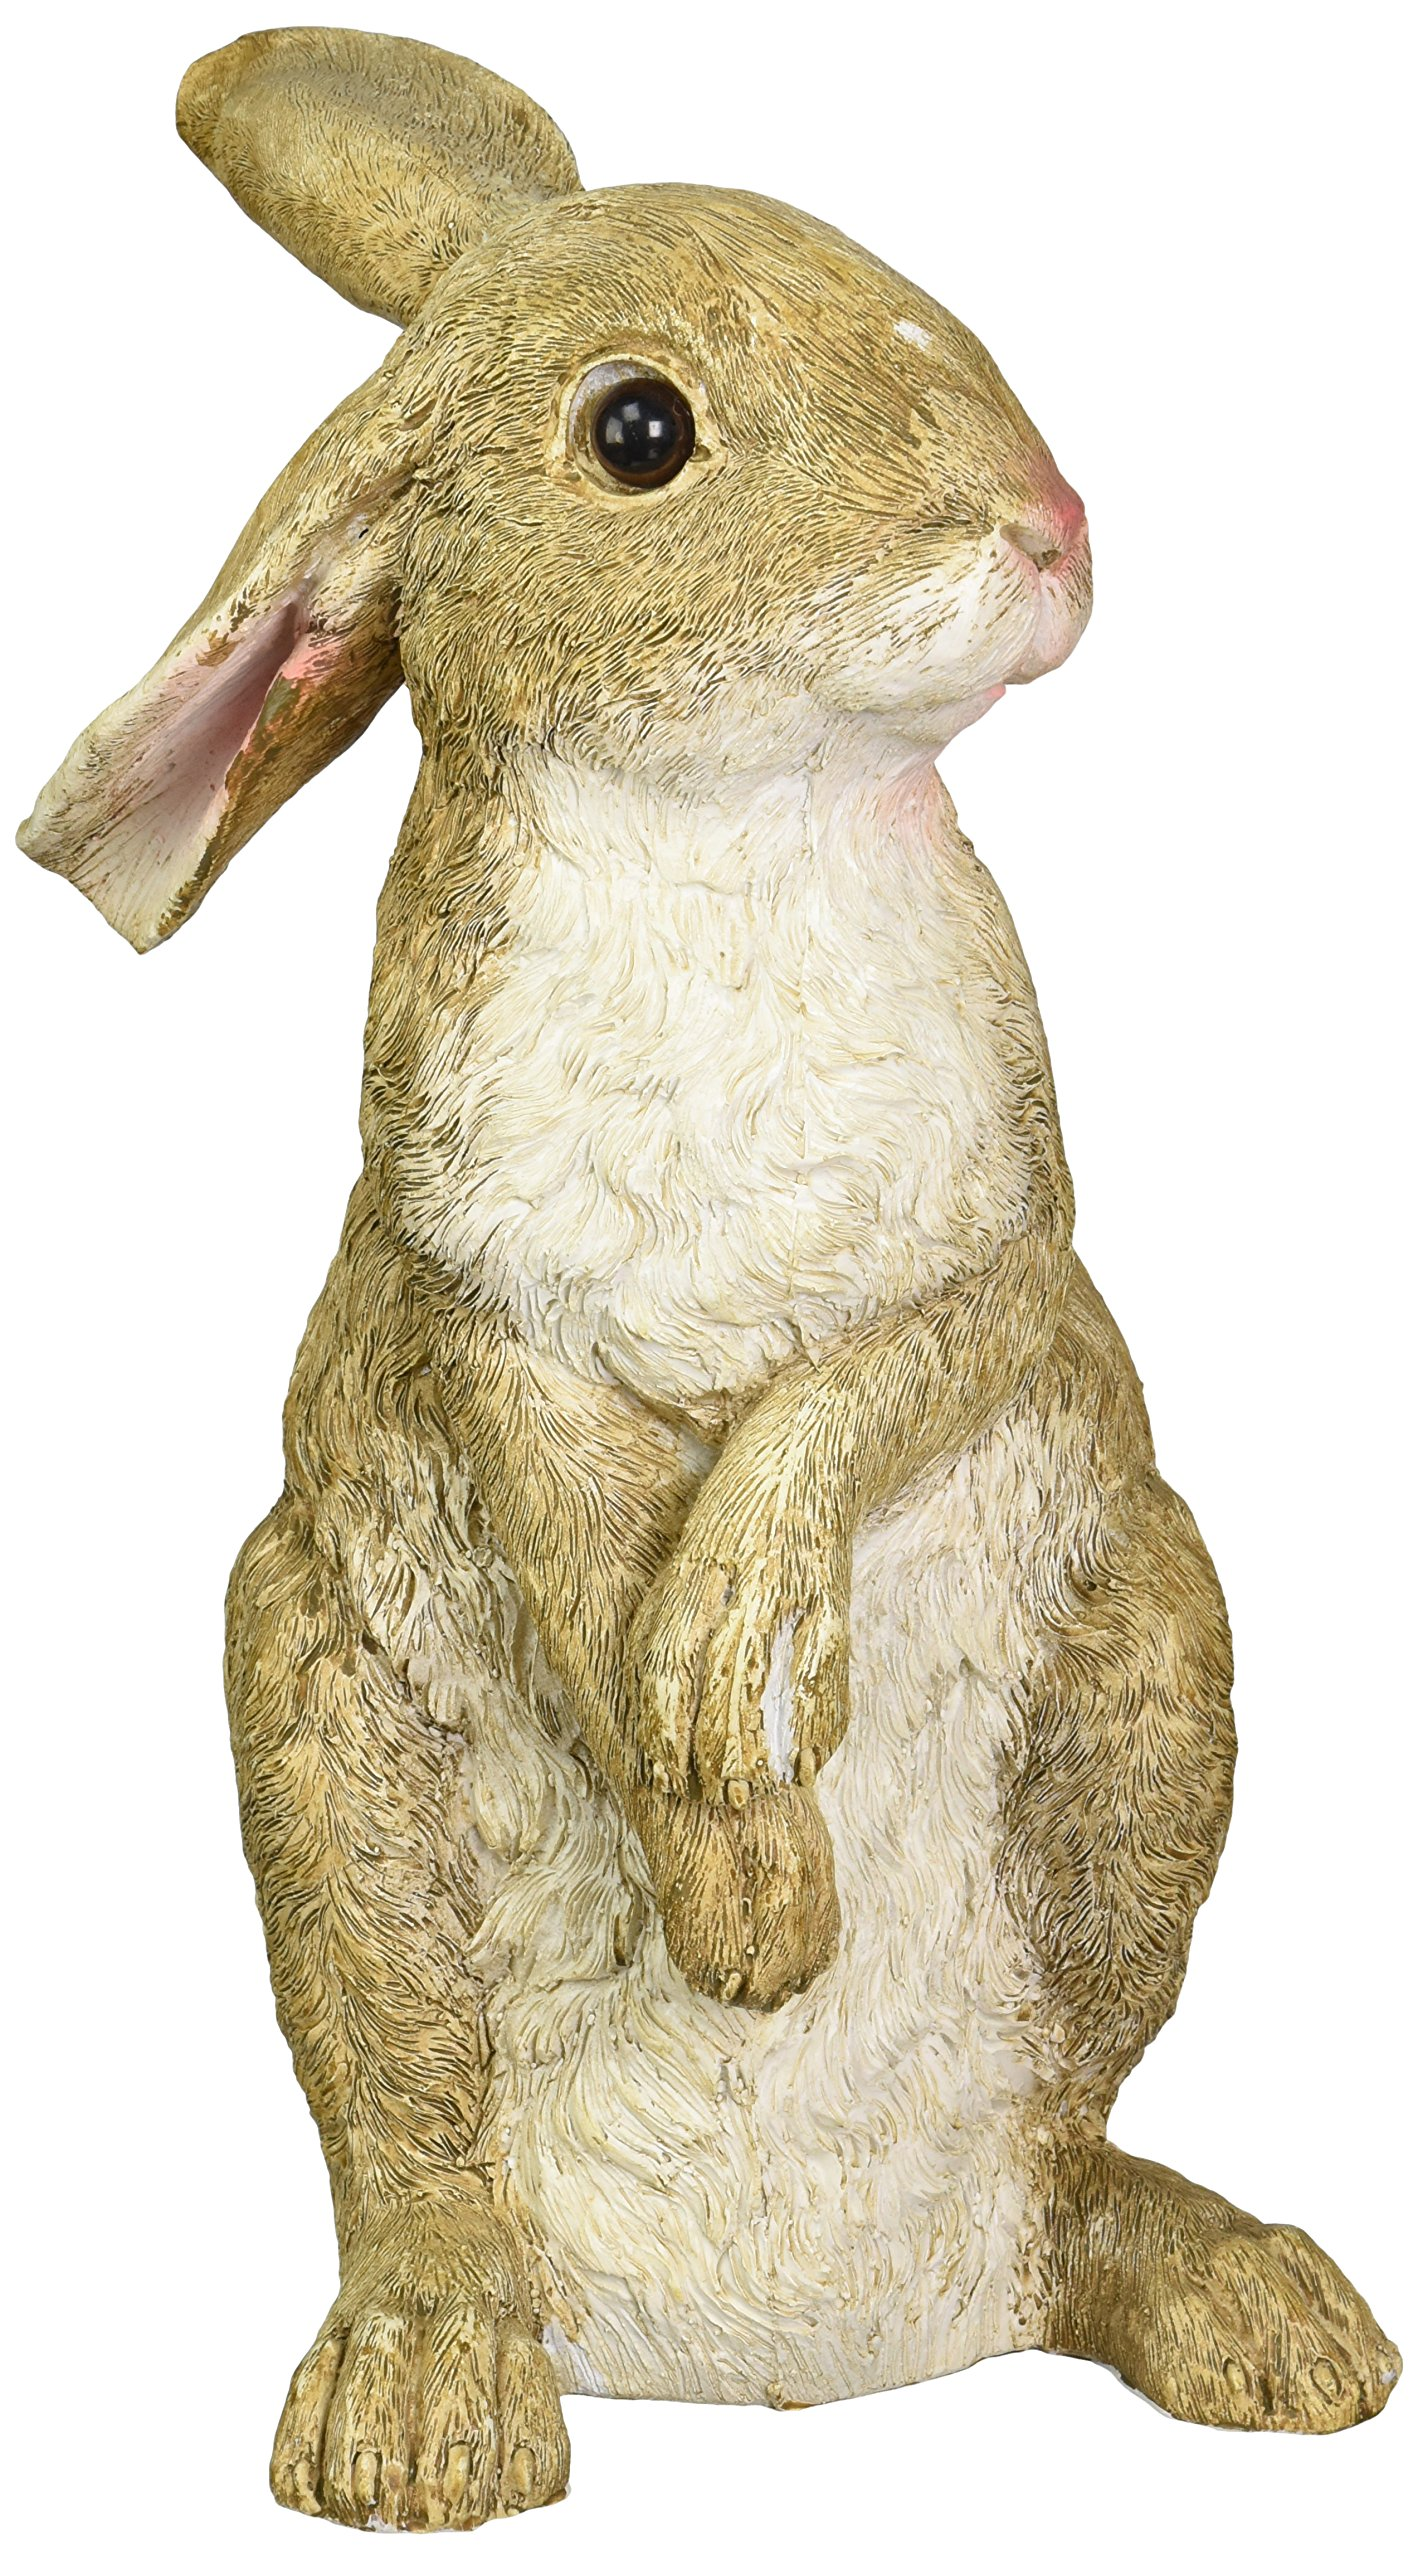 Design Toscano Hopper the Bunny Standing Rabbit Outdoor Garden Statue, 11 Inch, Polyresin